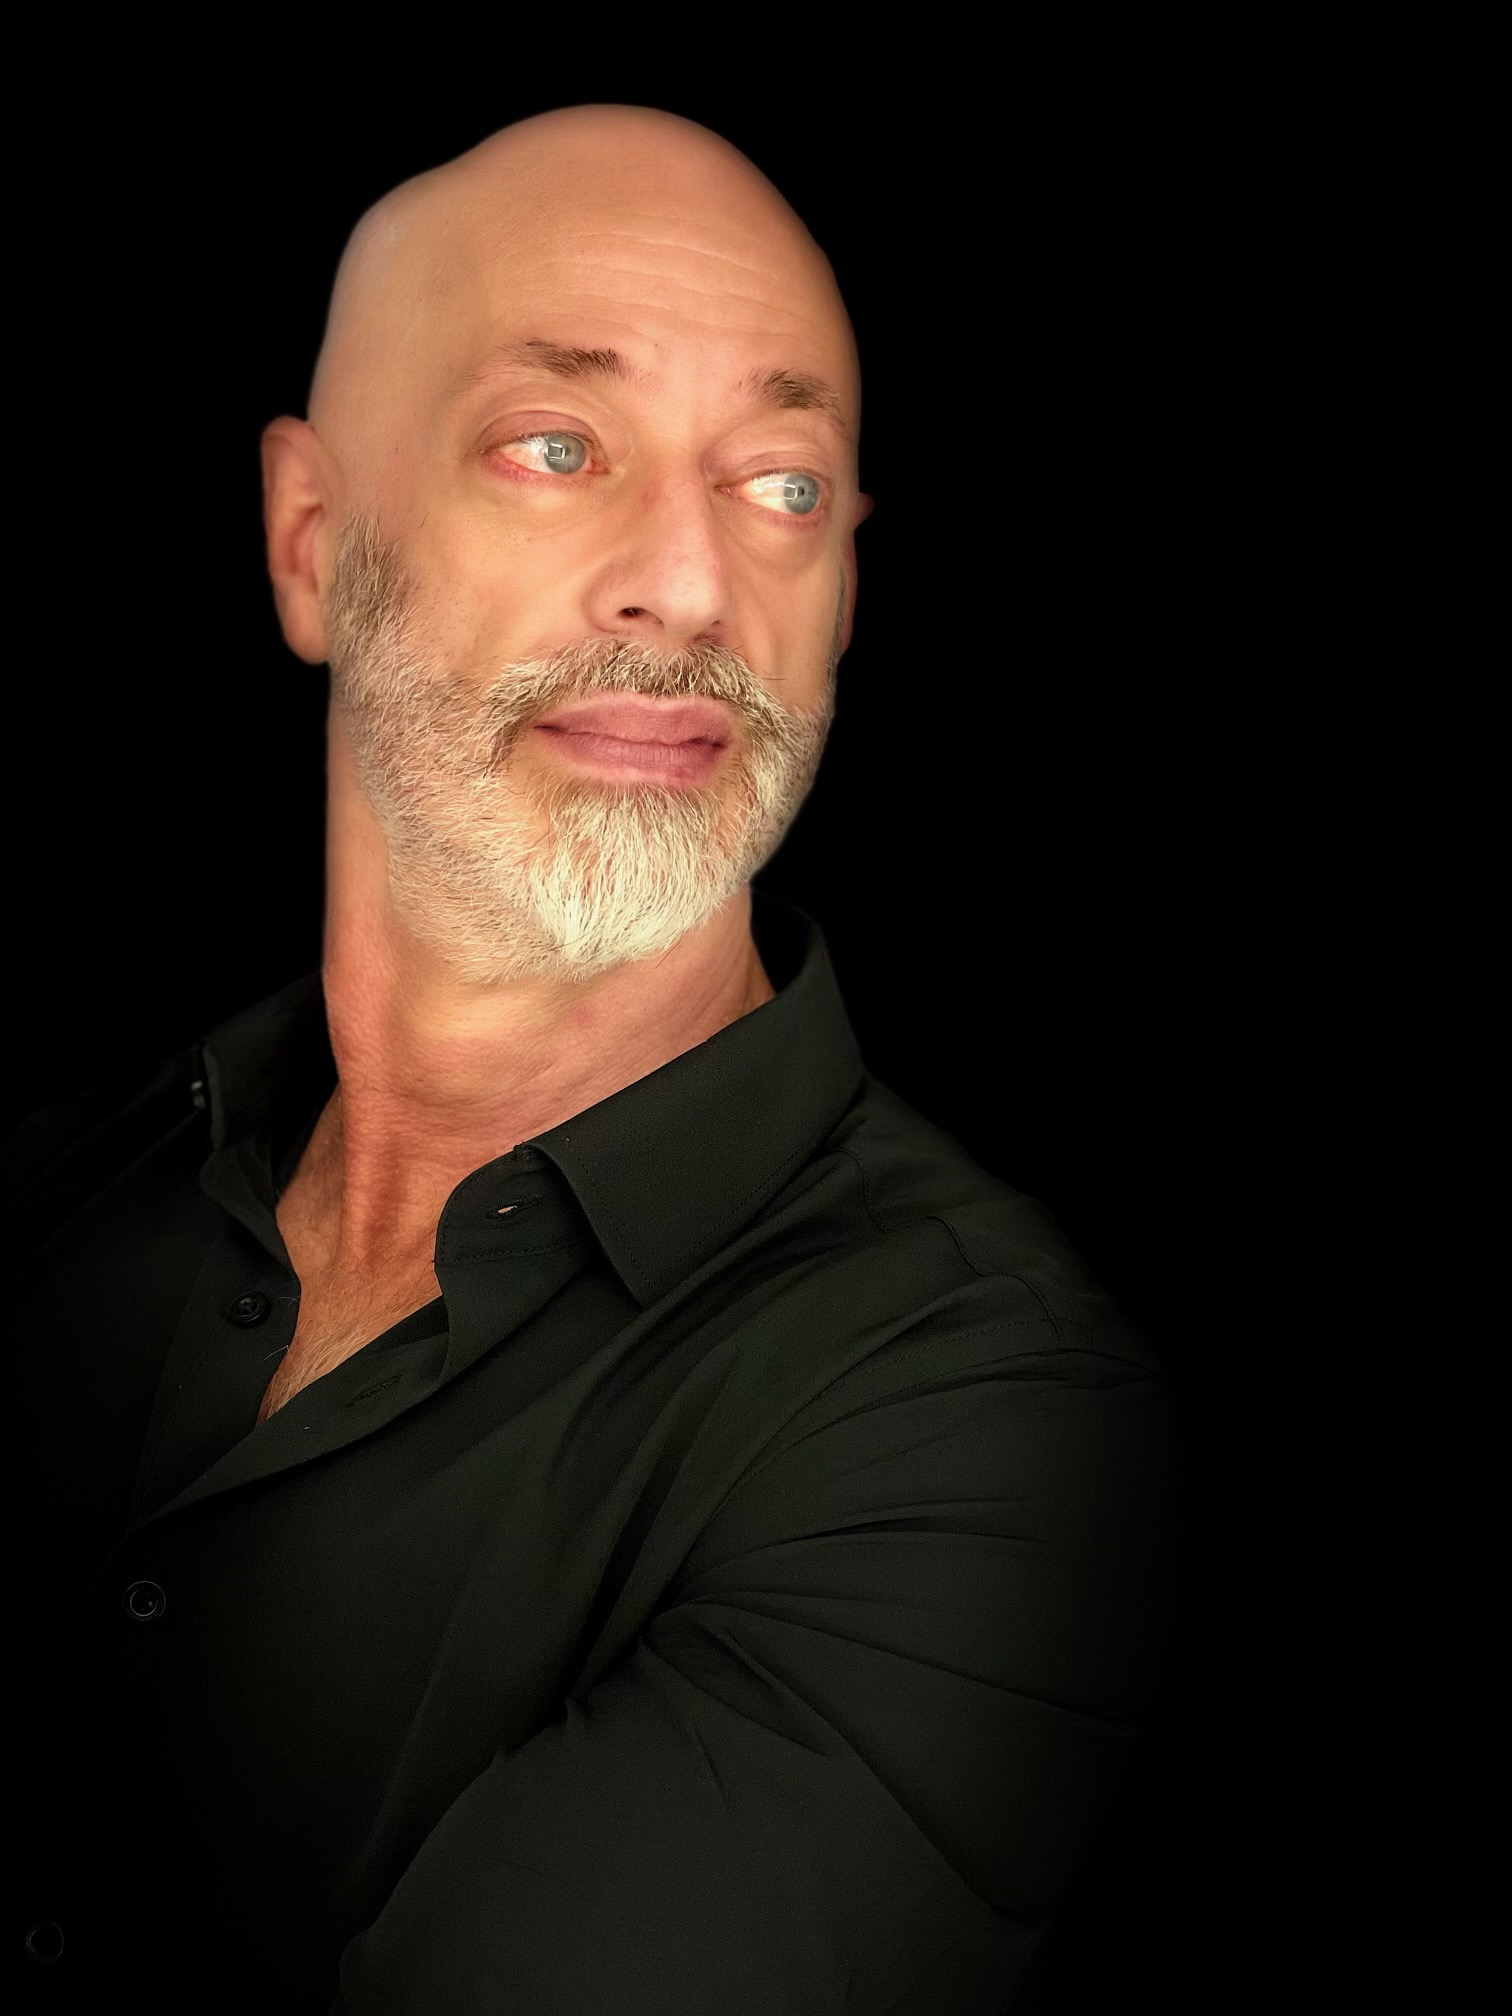 Bald-headed man with cropped white beard in a black button up shirt looking over his left shoulder.